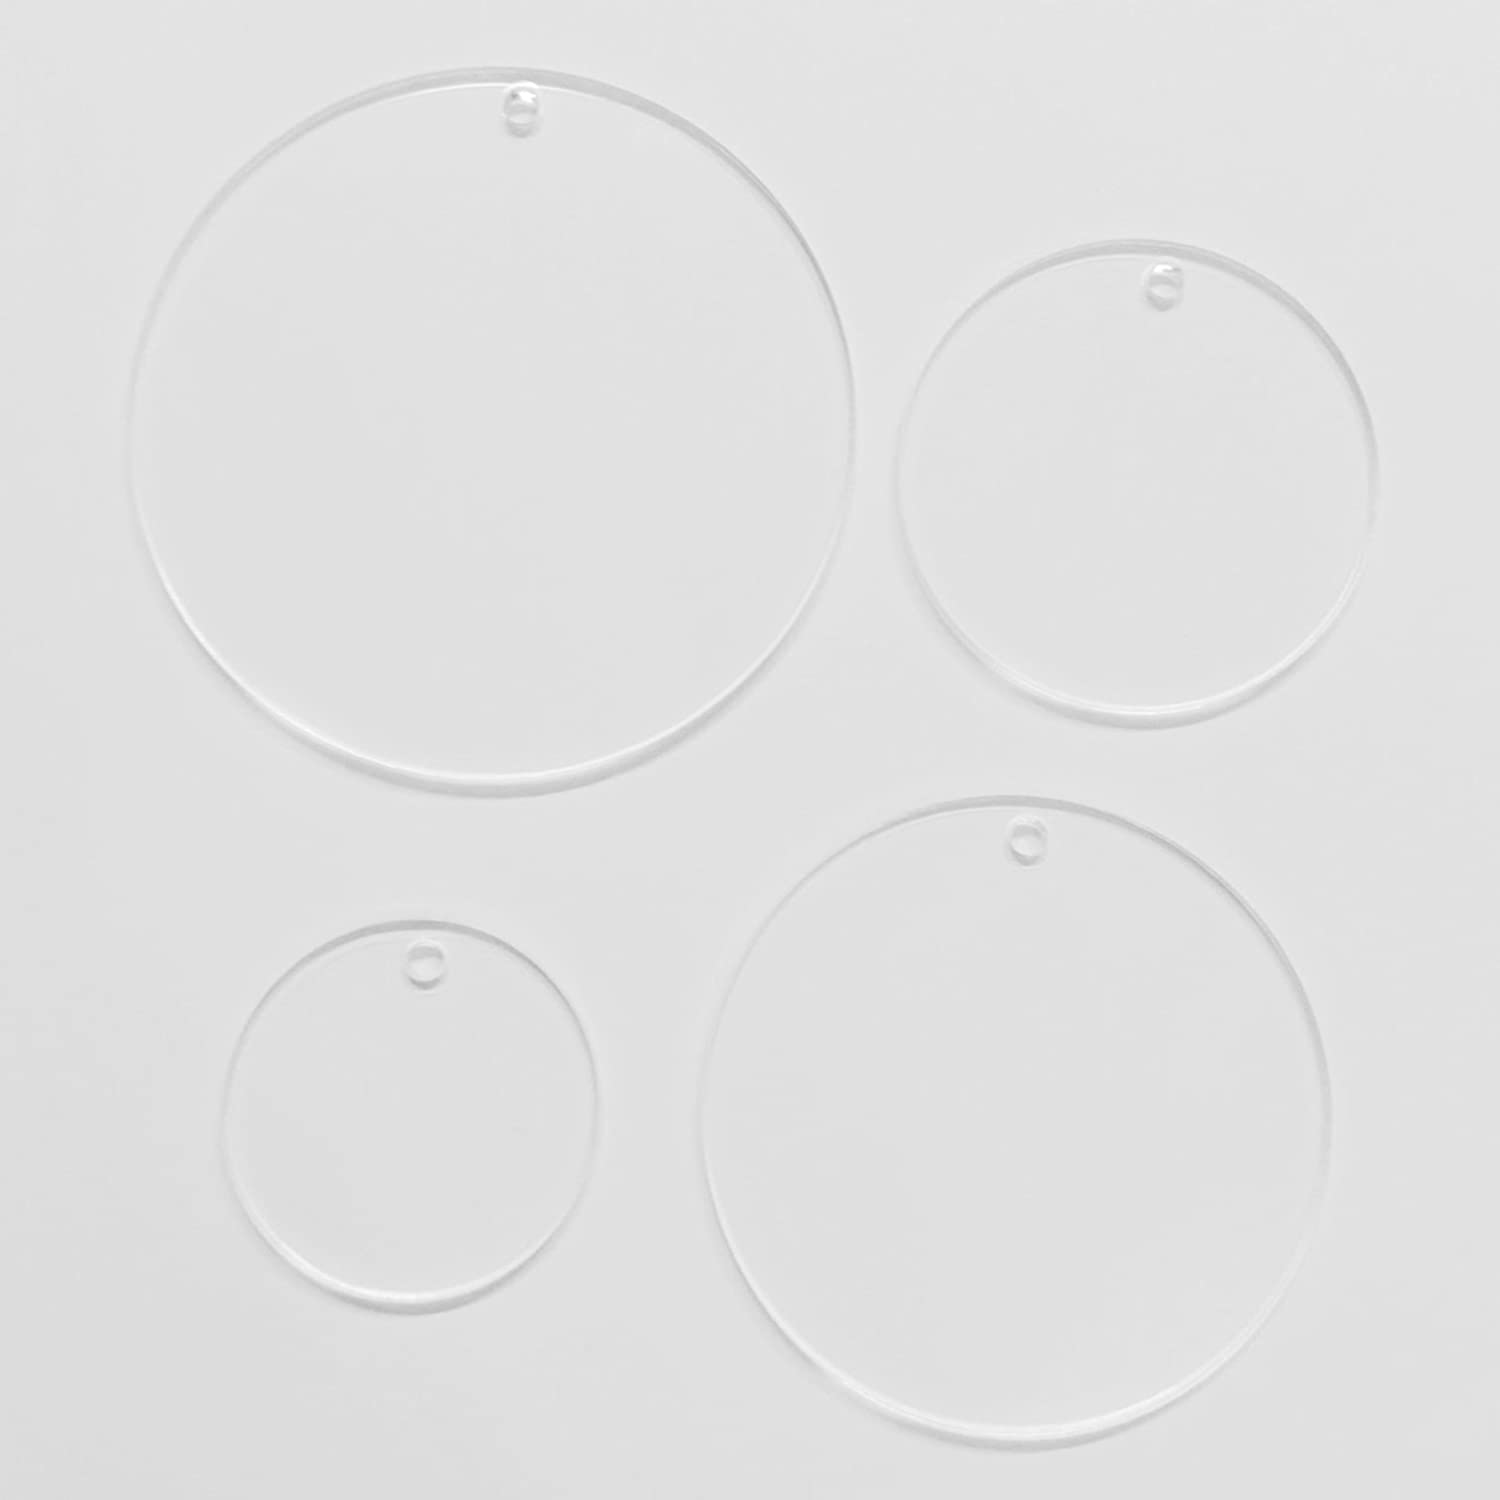 3 - Laser Cut Clear Round Blanks for Vinyl Projects Includes Free SVG Files 3 25 Cast Acrylic Blanks Blank Keychains and DIY Crafts Acrylic Ornaments